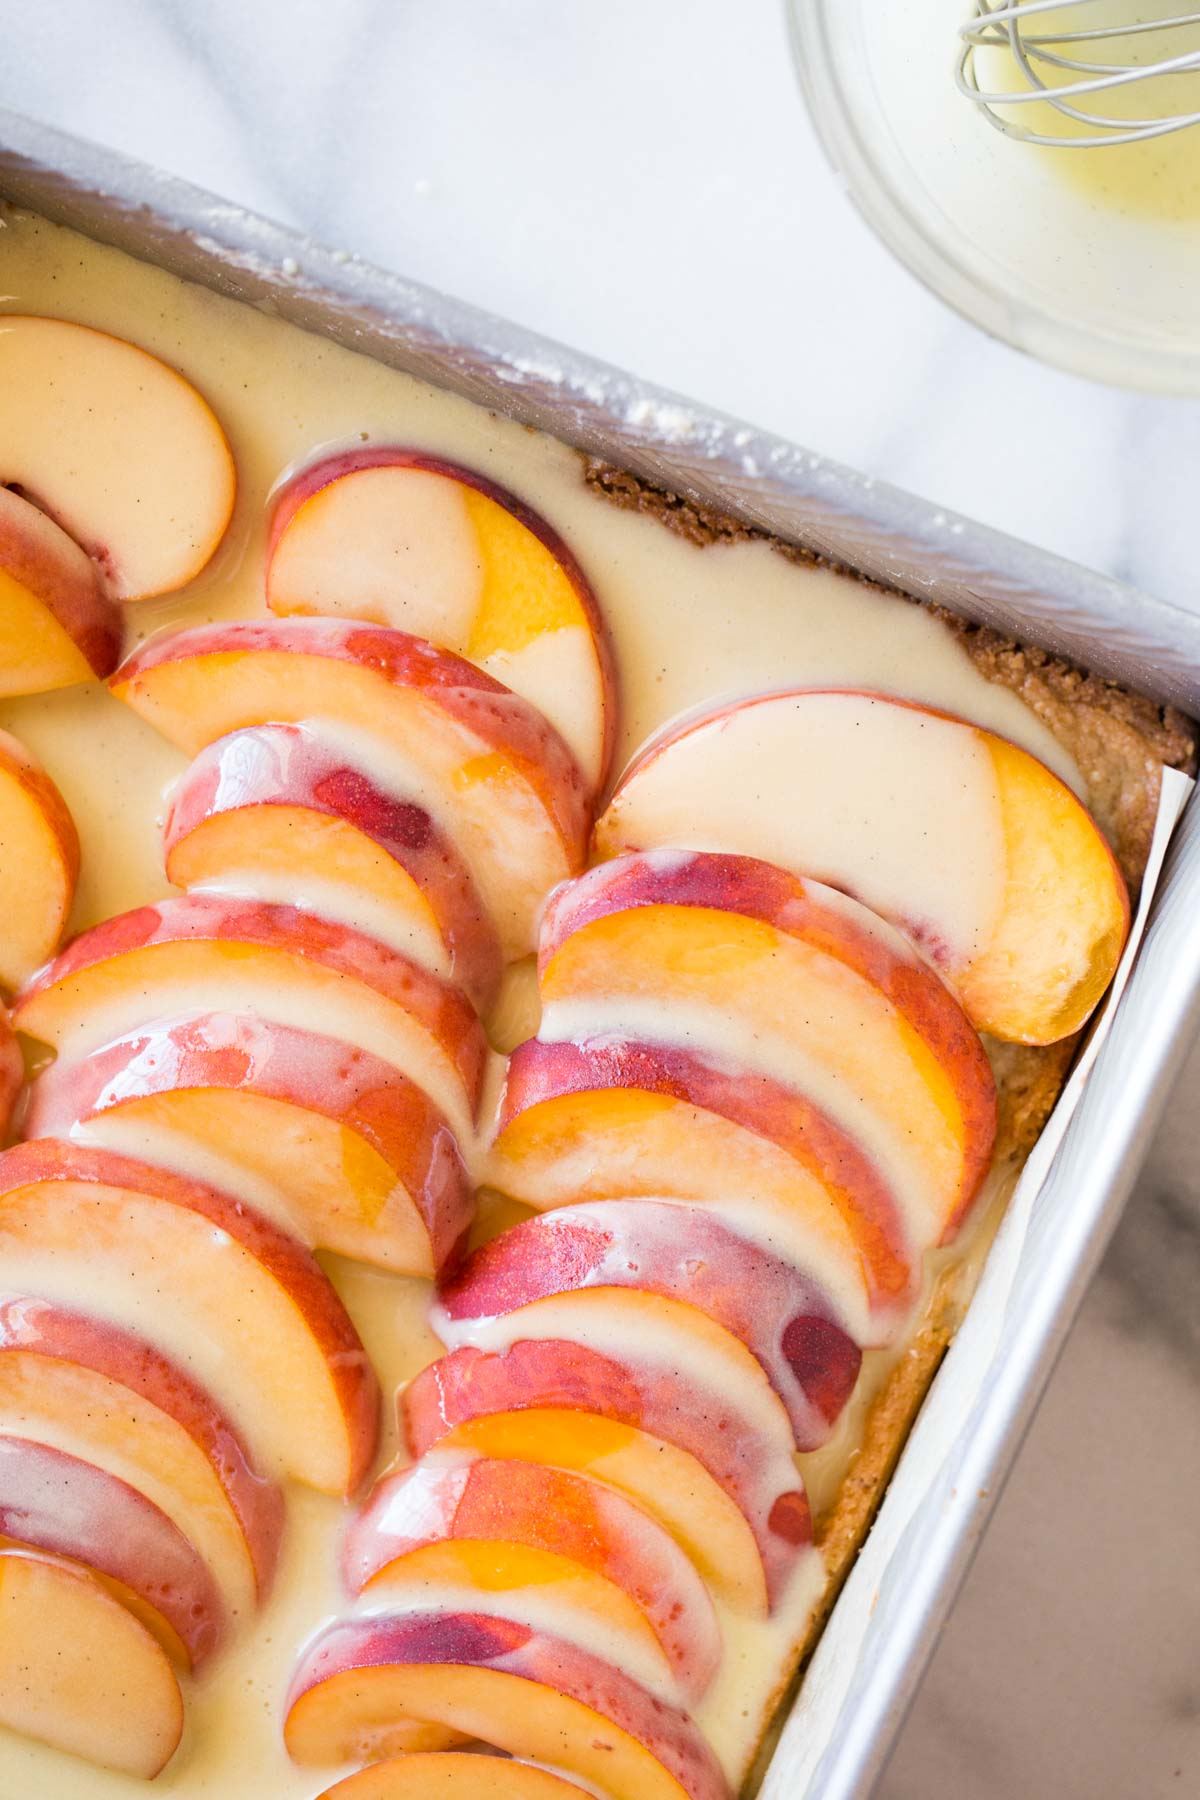 Peaches and Cream Shortbread Bars assembled in a baking dish prior to baking.